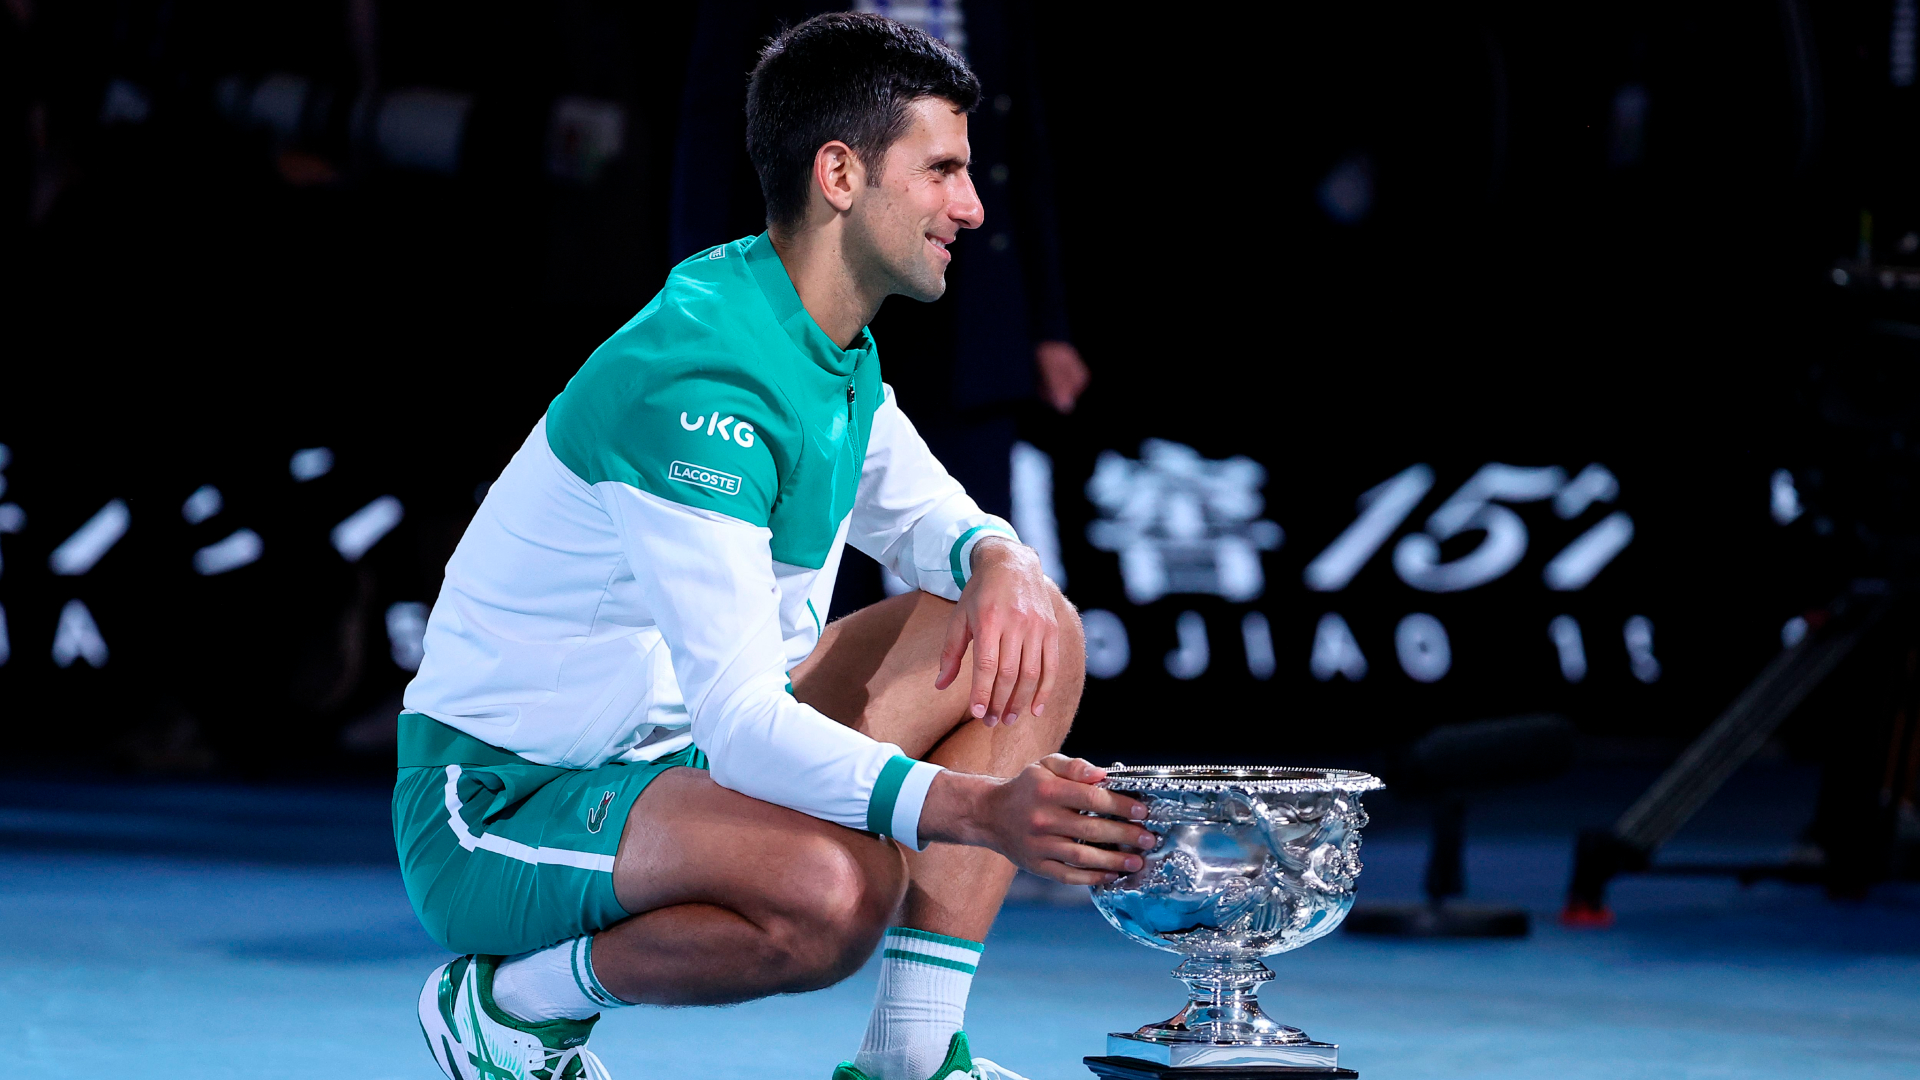 After winning the Australian Open, Novak Djokovic confirmed he had been playing with a torn oblique muscle.